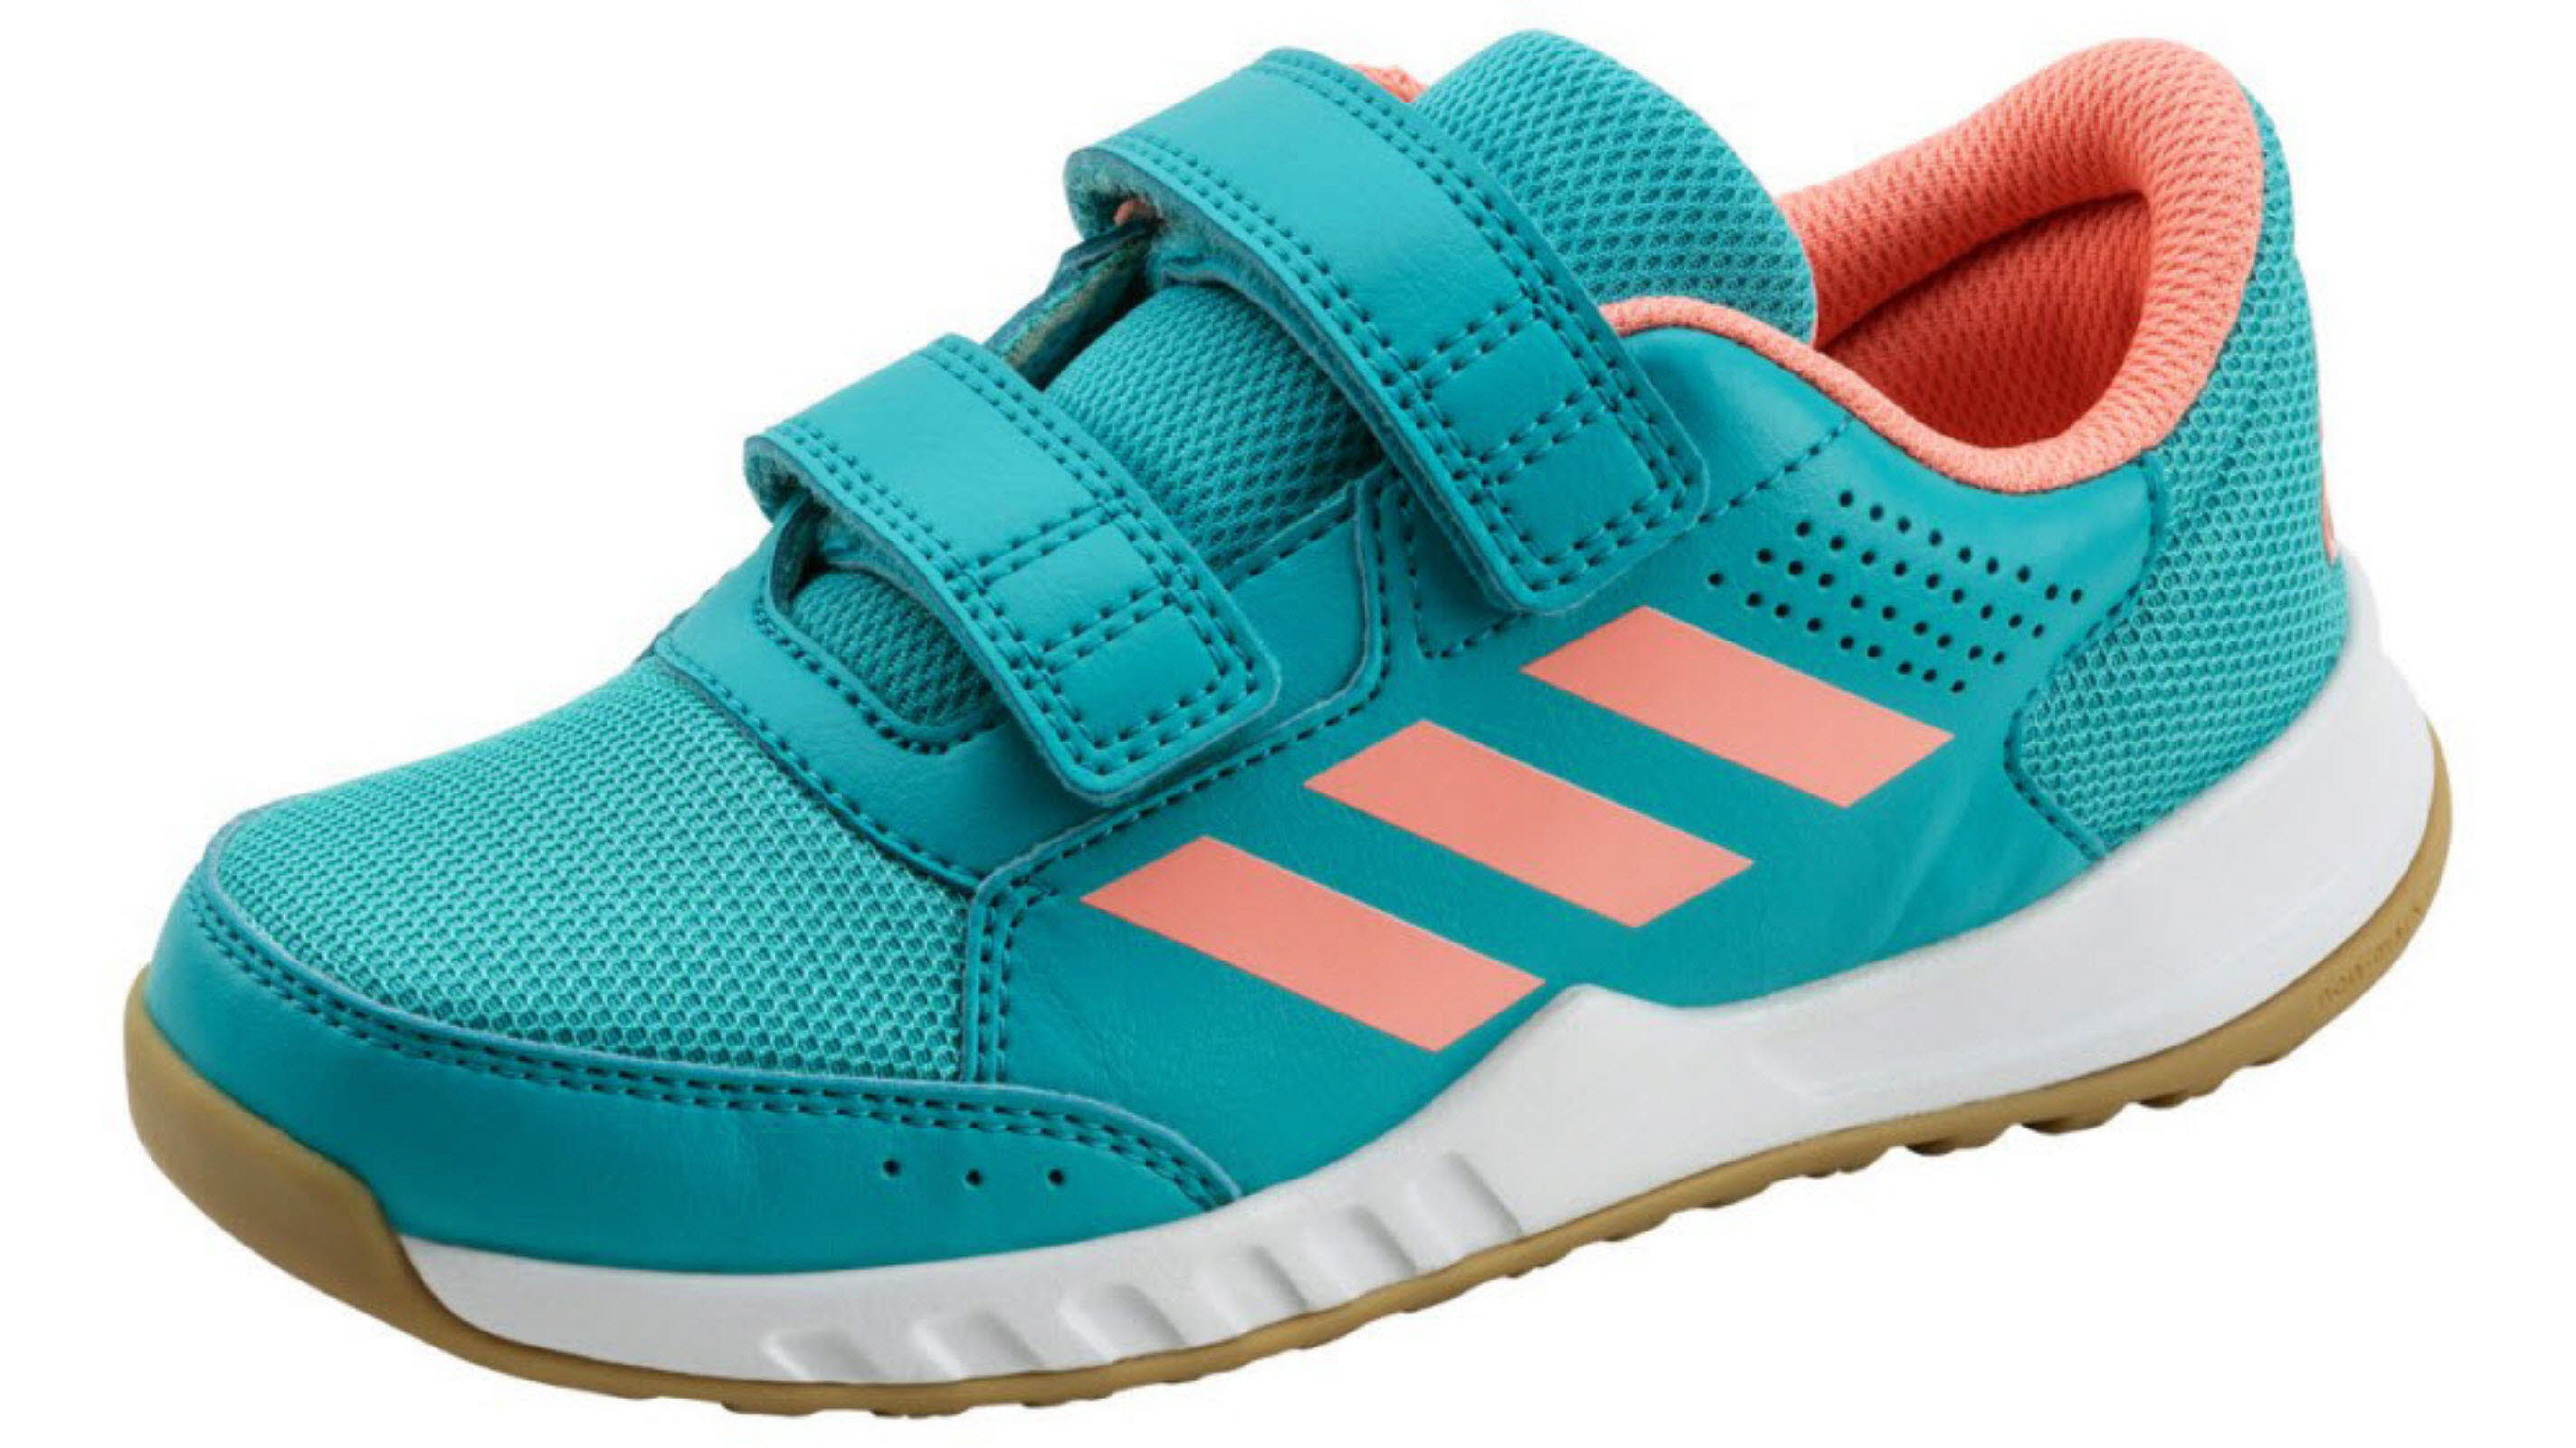 adidas Unisex Kinder Interplay Cf K Hallenschuhe: Sport